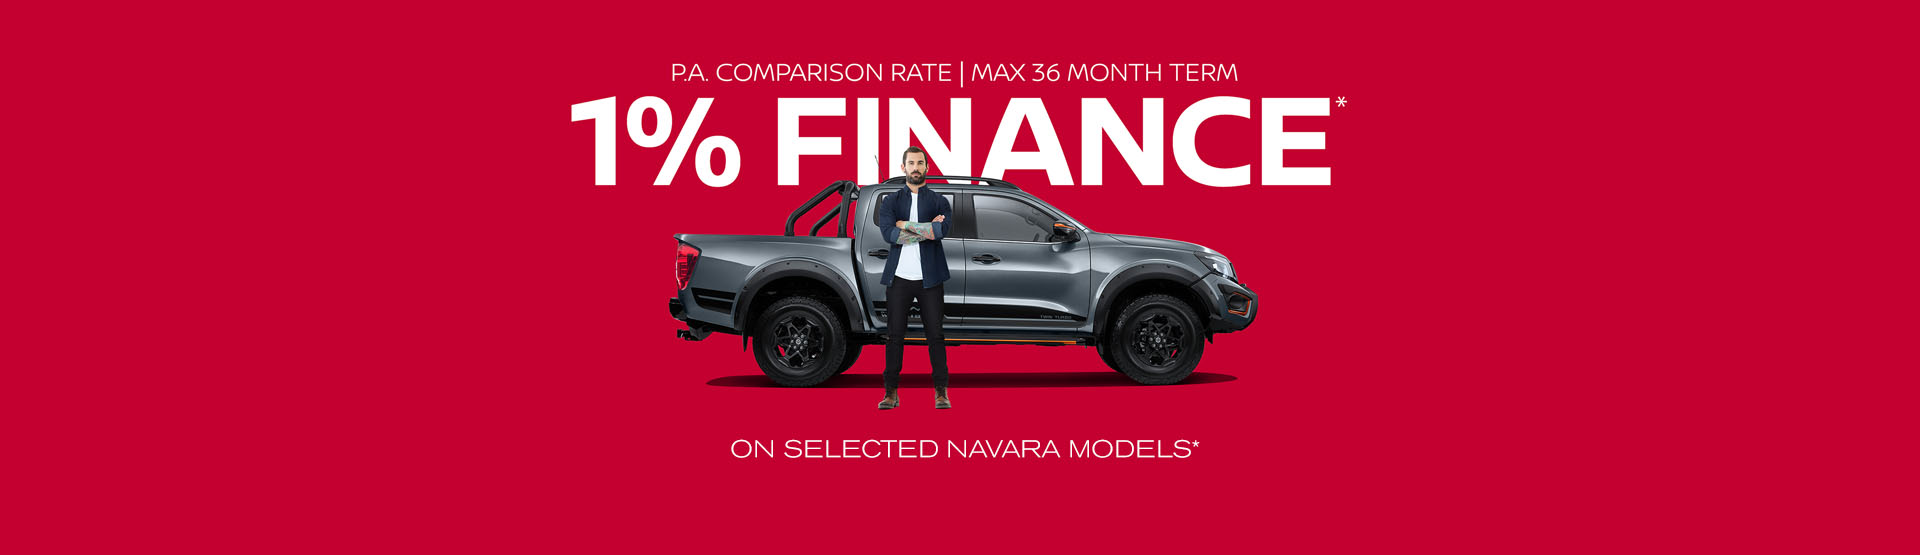 Nissan Factory Offer